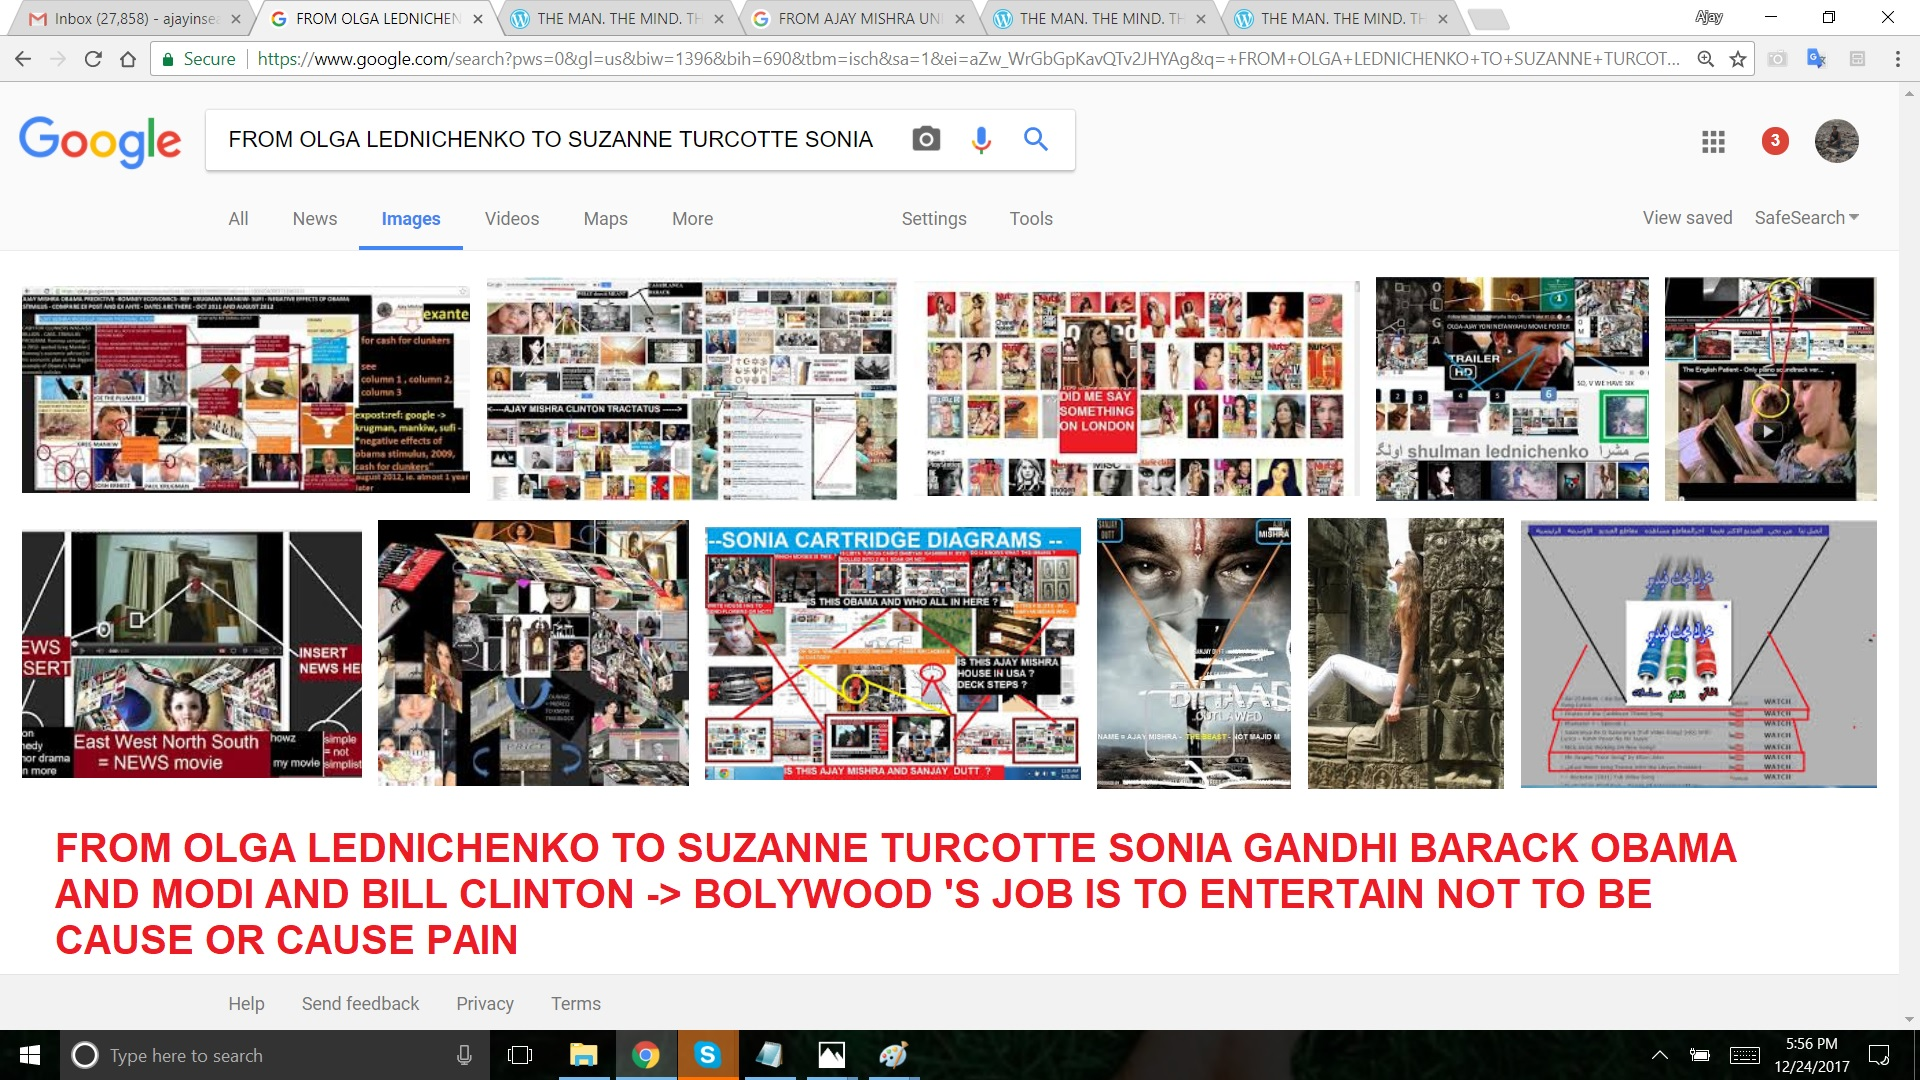 FROM OLGA LEDNICHENKO TO SUZANNE TURCOTTE SONIA GANDHI BARACK OBAMA AND MODI AND BILL CLINTON BOLYWOOD 'S JOB IS TO ENTERTAIN NOT TO BE CAUSE OR CAUSE PAIN